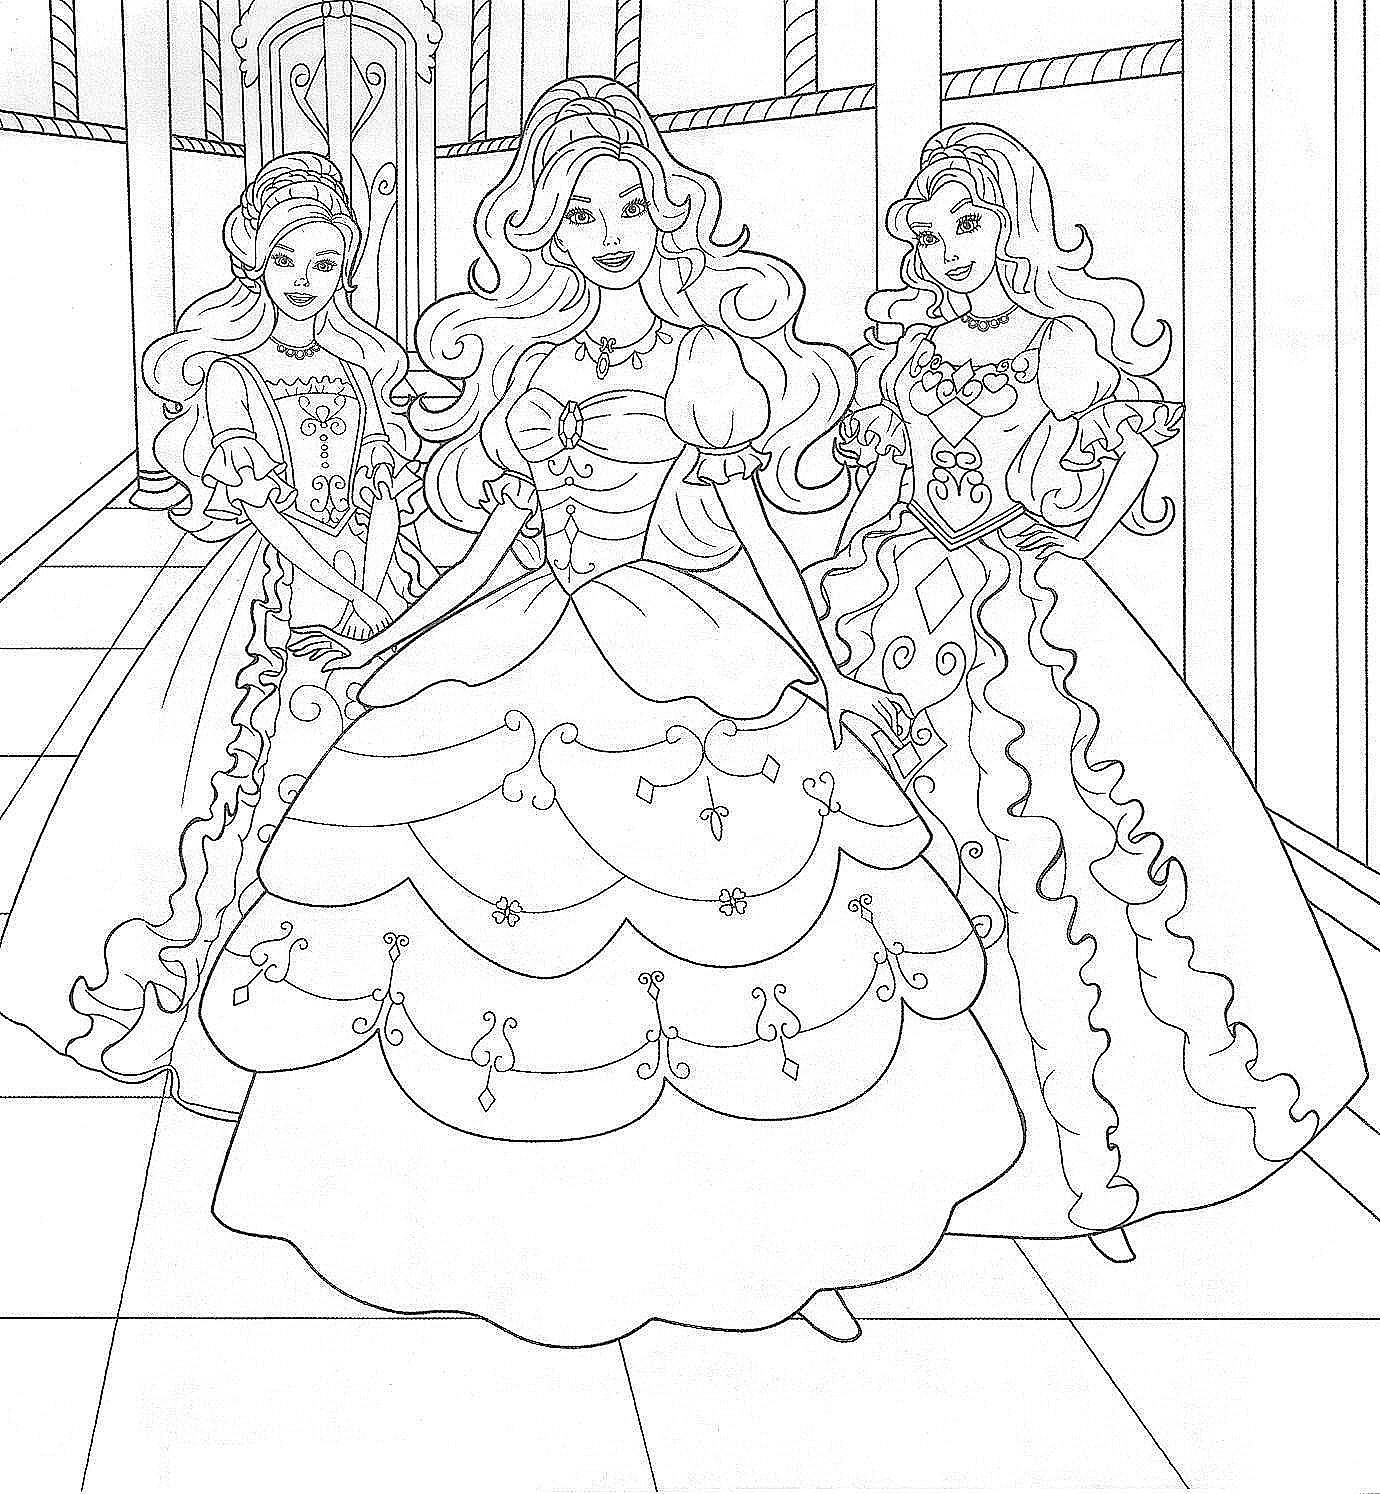 barbie girls coloring pages - photo#17